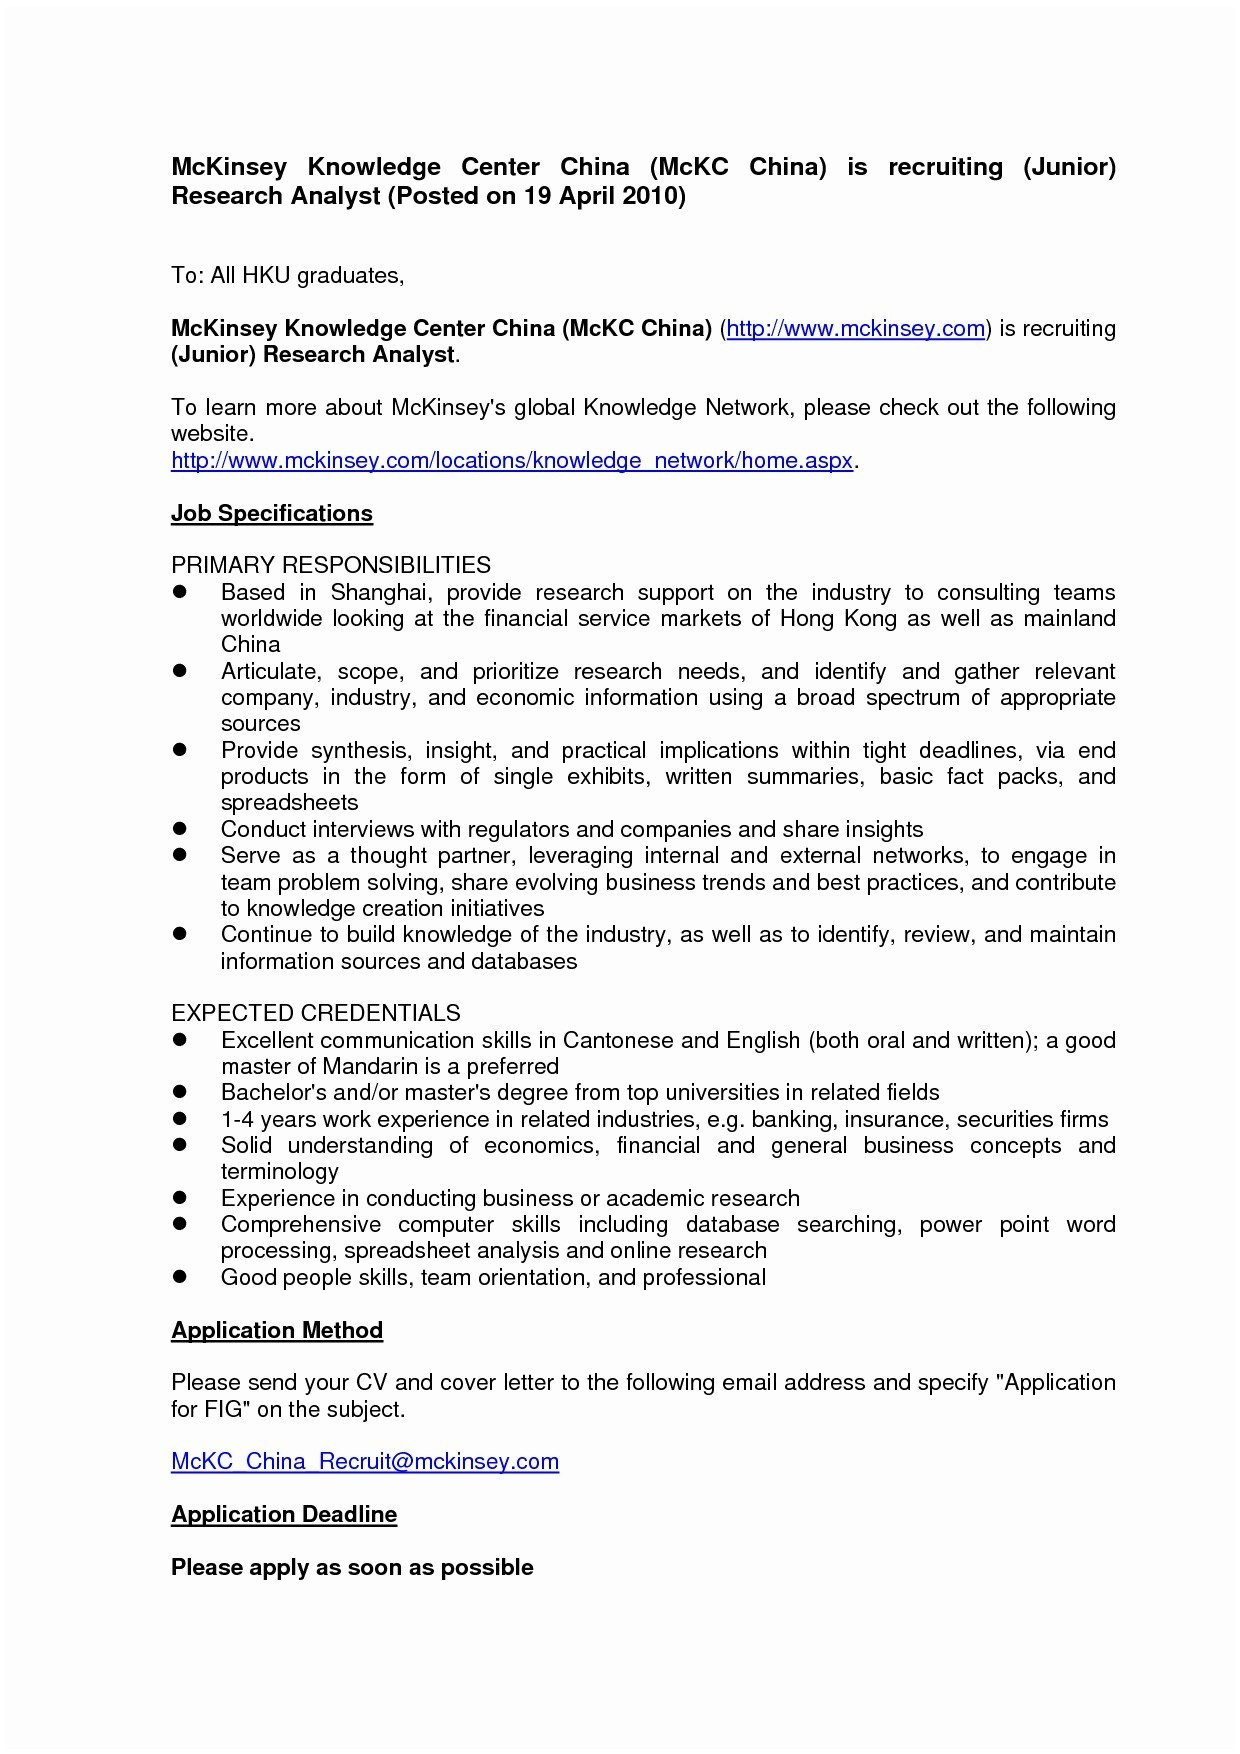 Basic Resume Cover Letter Template - Simple Resume Cover Letter Template Roddyschrock